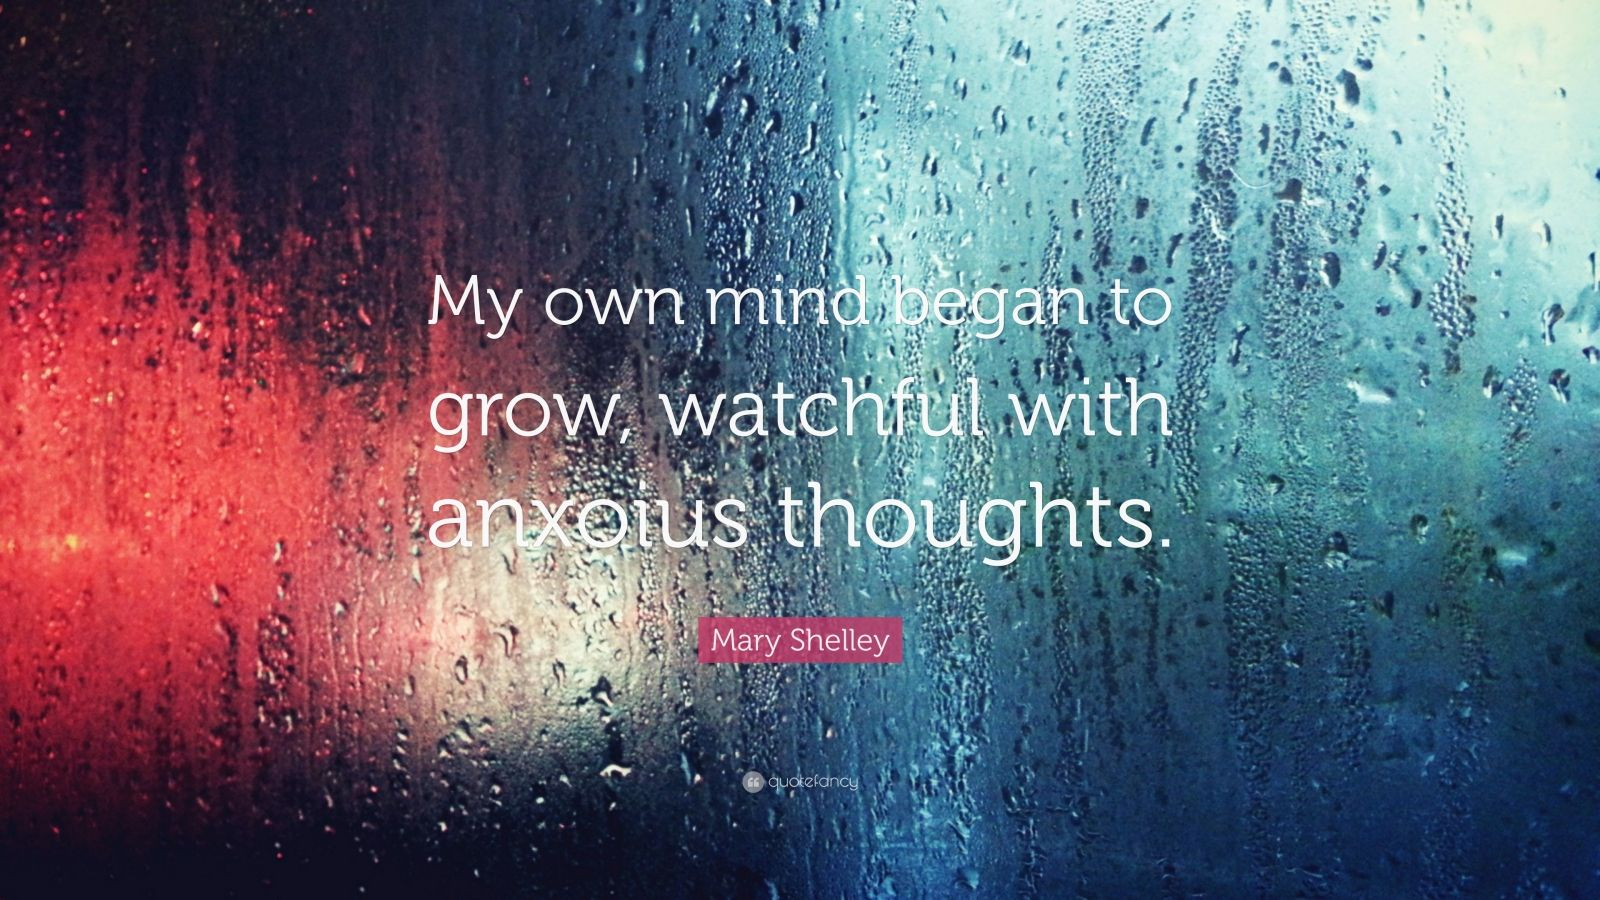 """Mary Shelley Quote: """"My own mind began to grow, watchful with anxoius thoughts."""""""